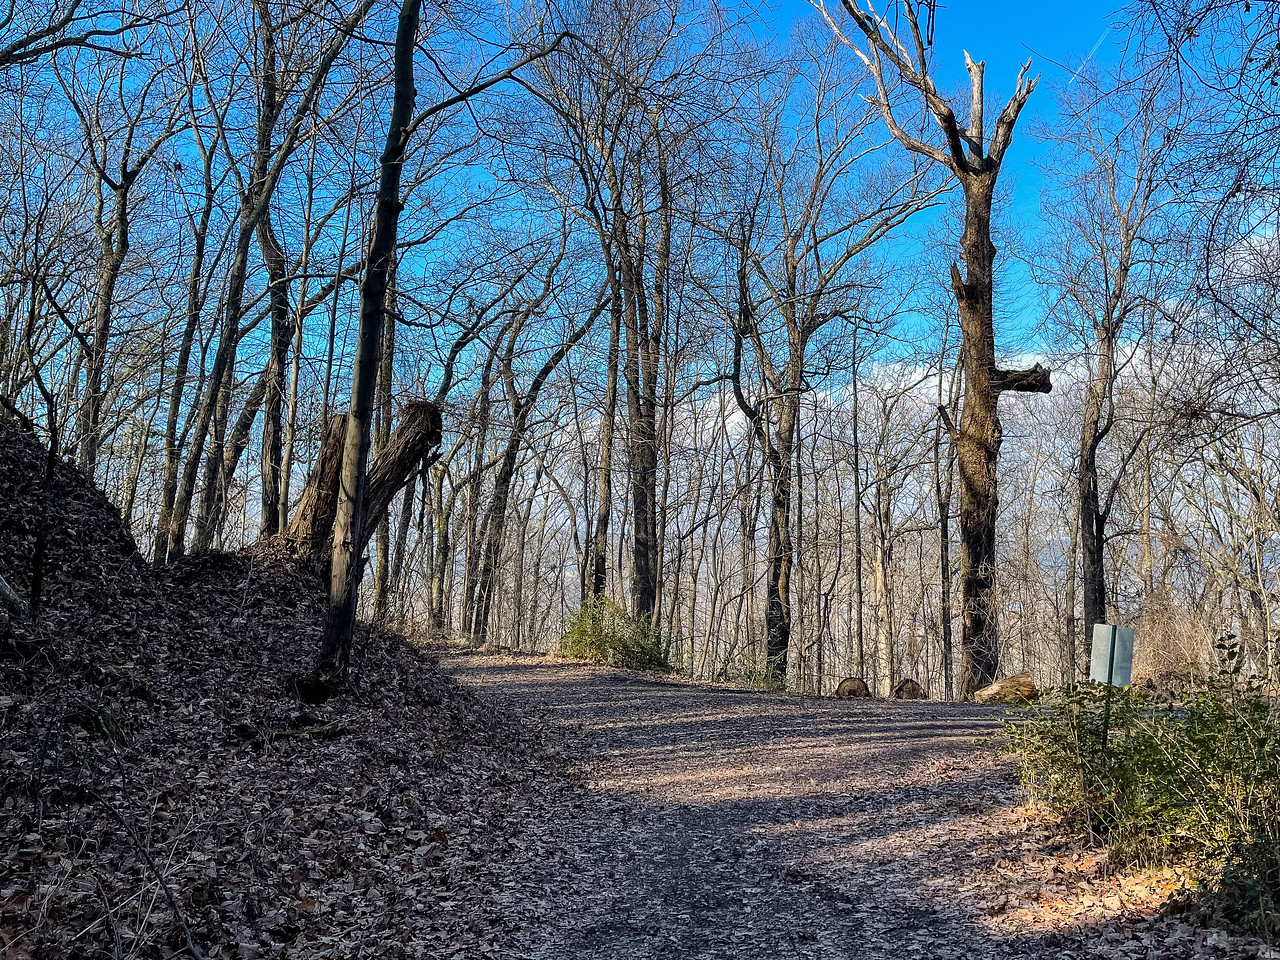 An intersection of two wide trails in the forest.